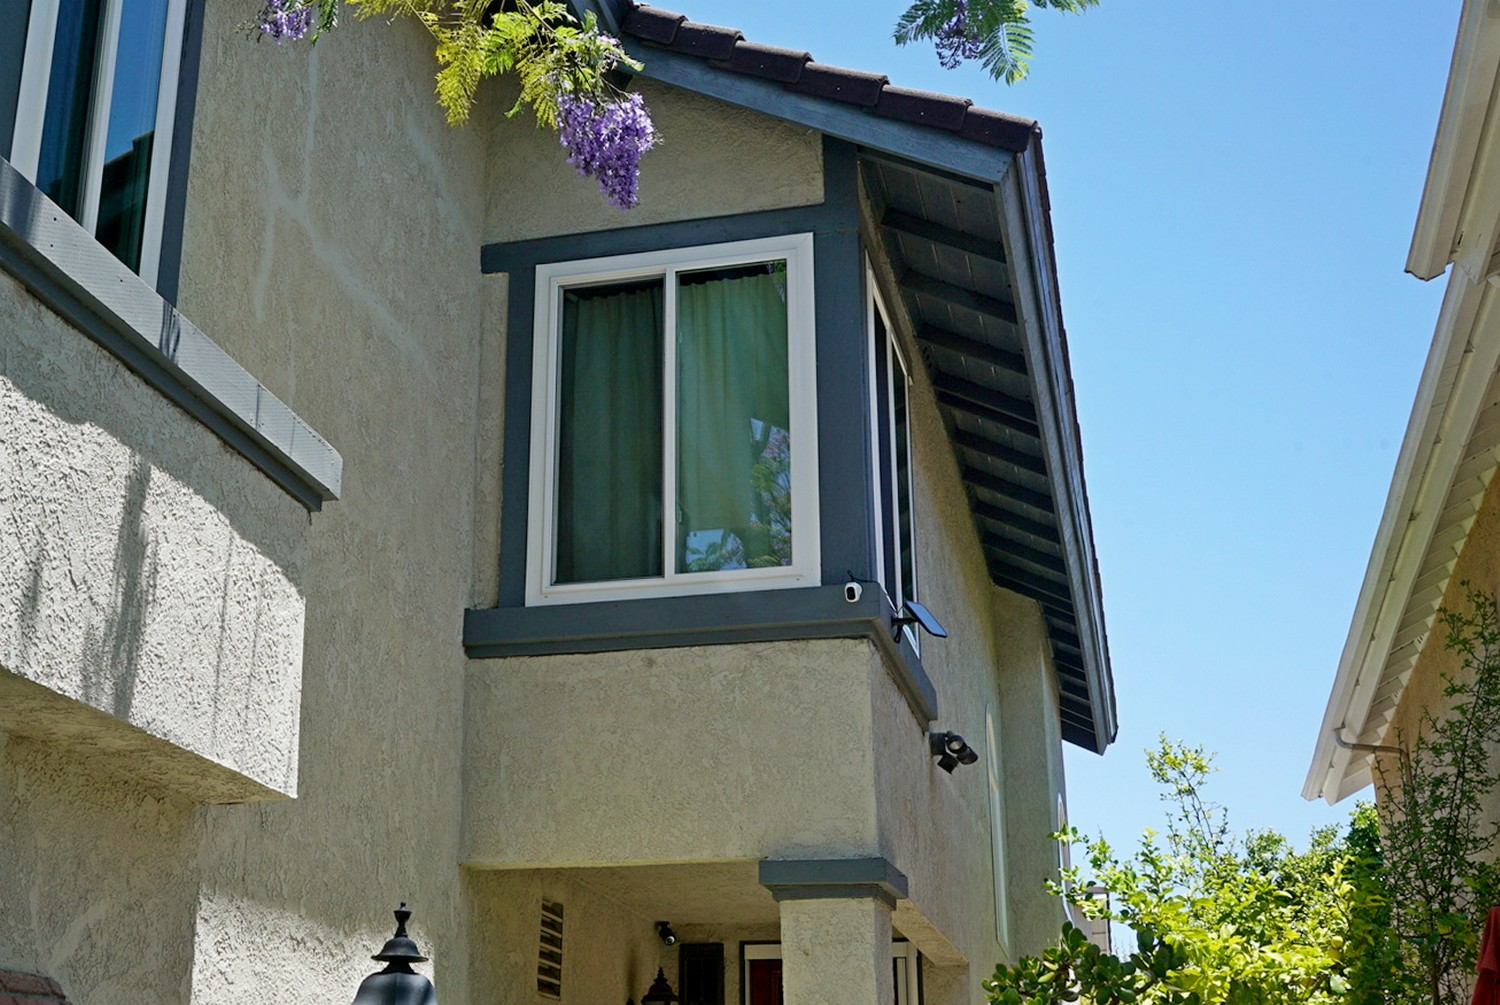 Window Replacement in Chino Hills